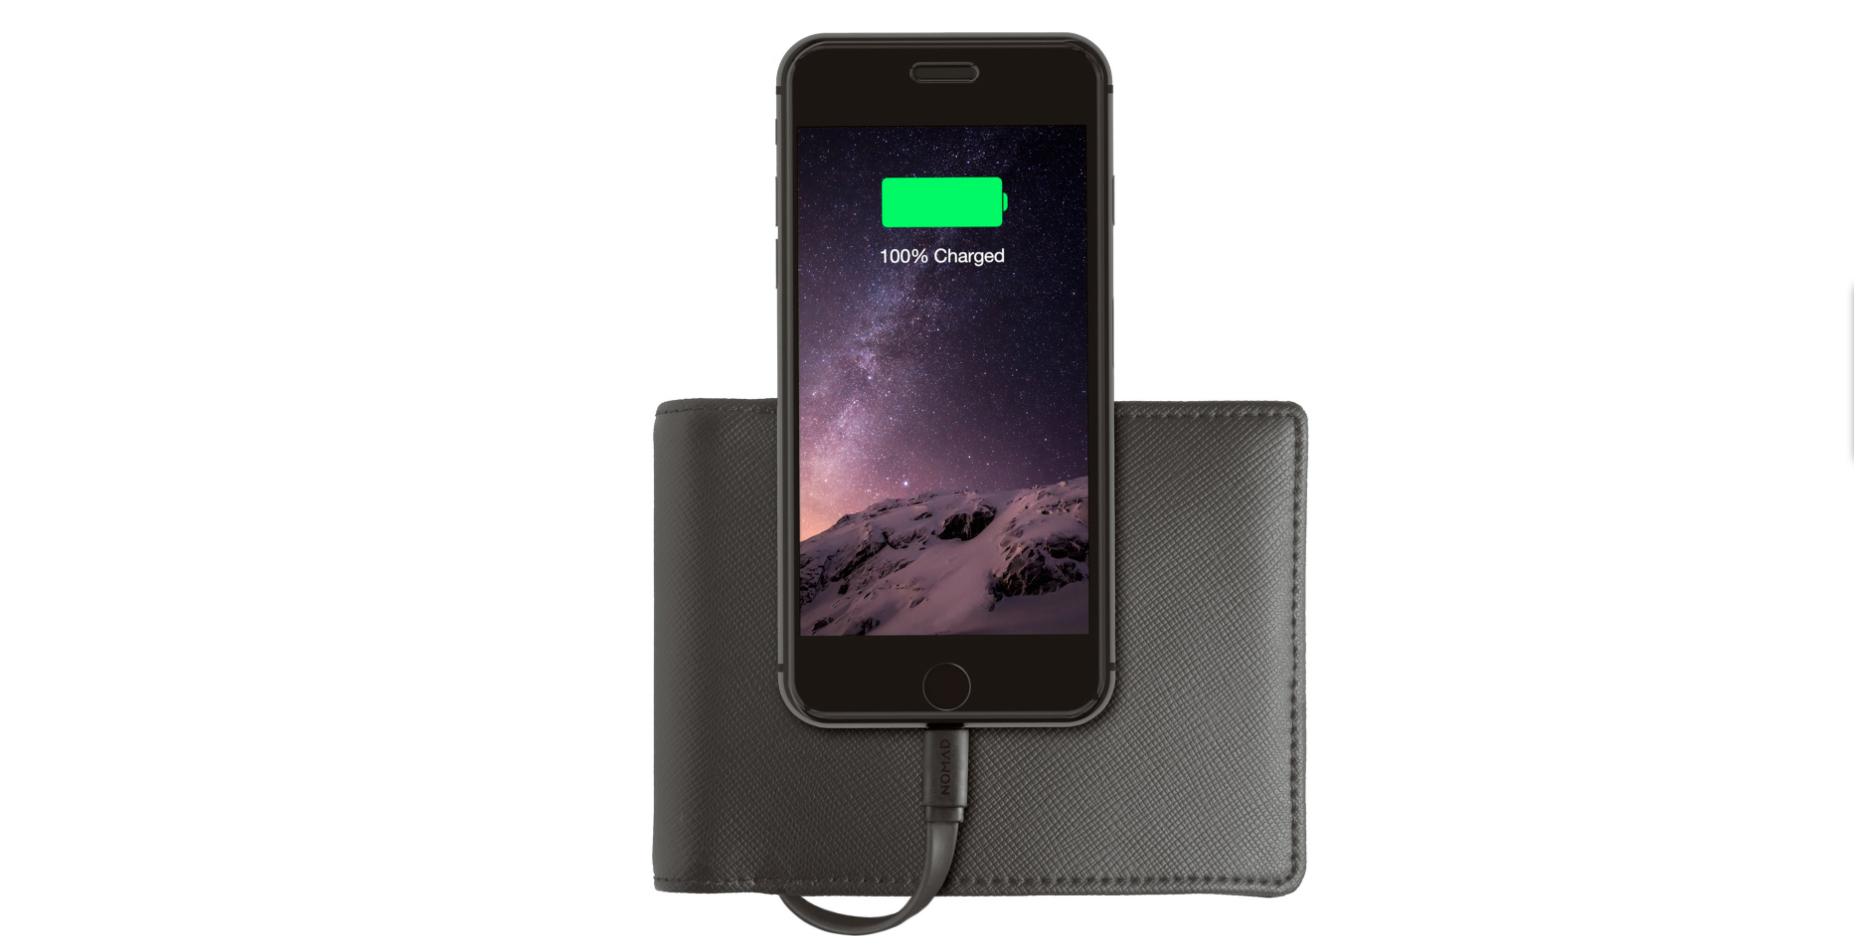 Nomad's latest iPhone accessory combines a wallet and backup battery